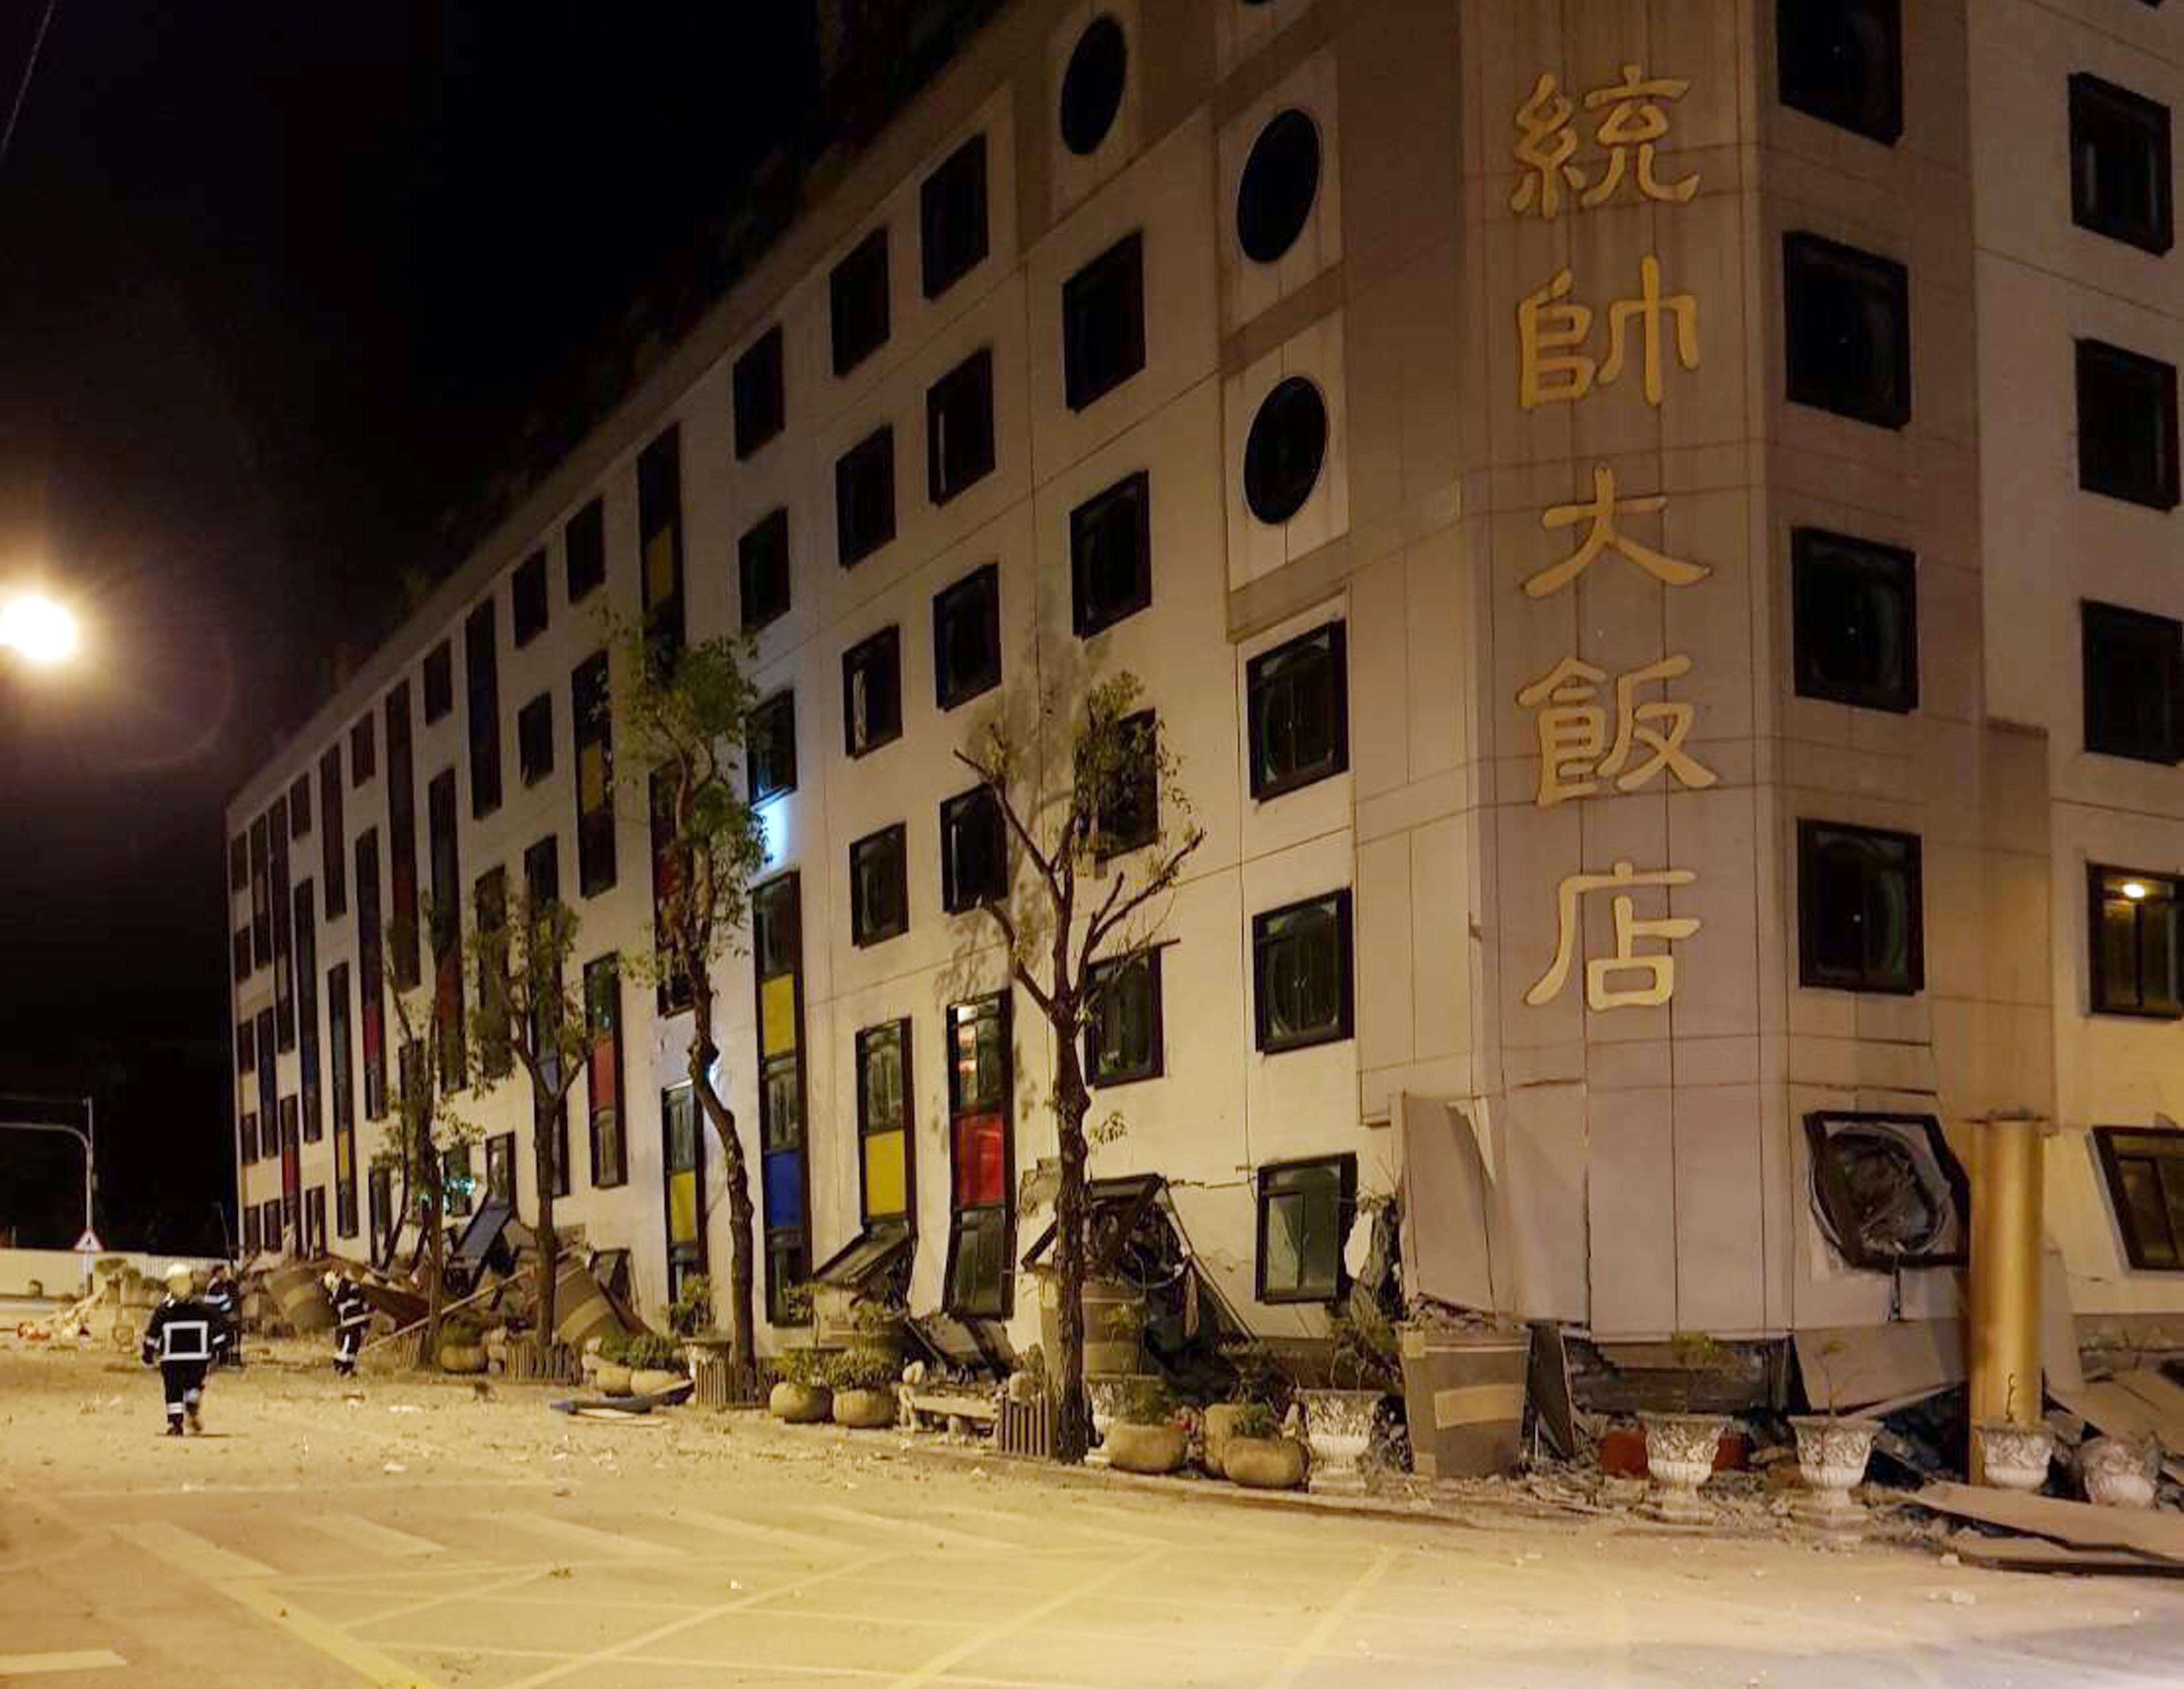 In this photo released by Hualien County Fire Bureau, debris around a building as rescue workers gain entry after the building collapsed onto its side following an early morning earthquake in Hualien County, eastern Taiwan, Wednesday, Feb. 7 2018. A 6.4-magnitude earthquake has struck eastern Taiwan. (Hualien County Fire Bureau via AP)